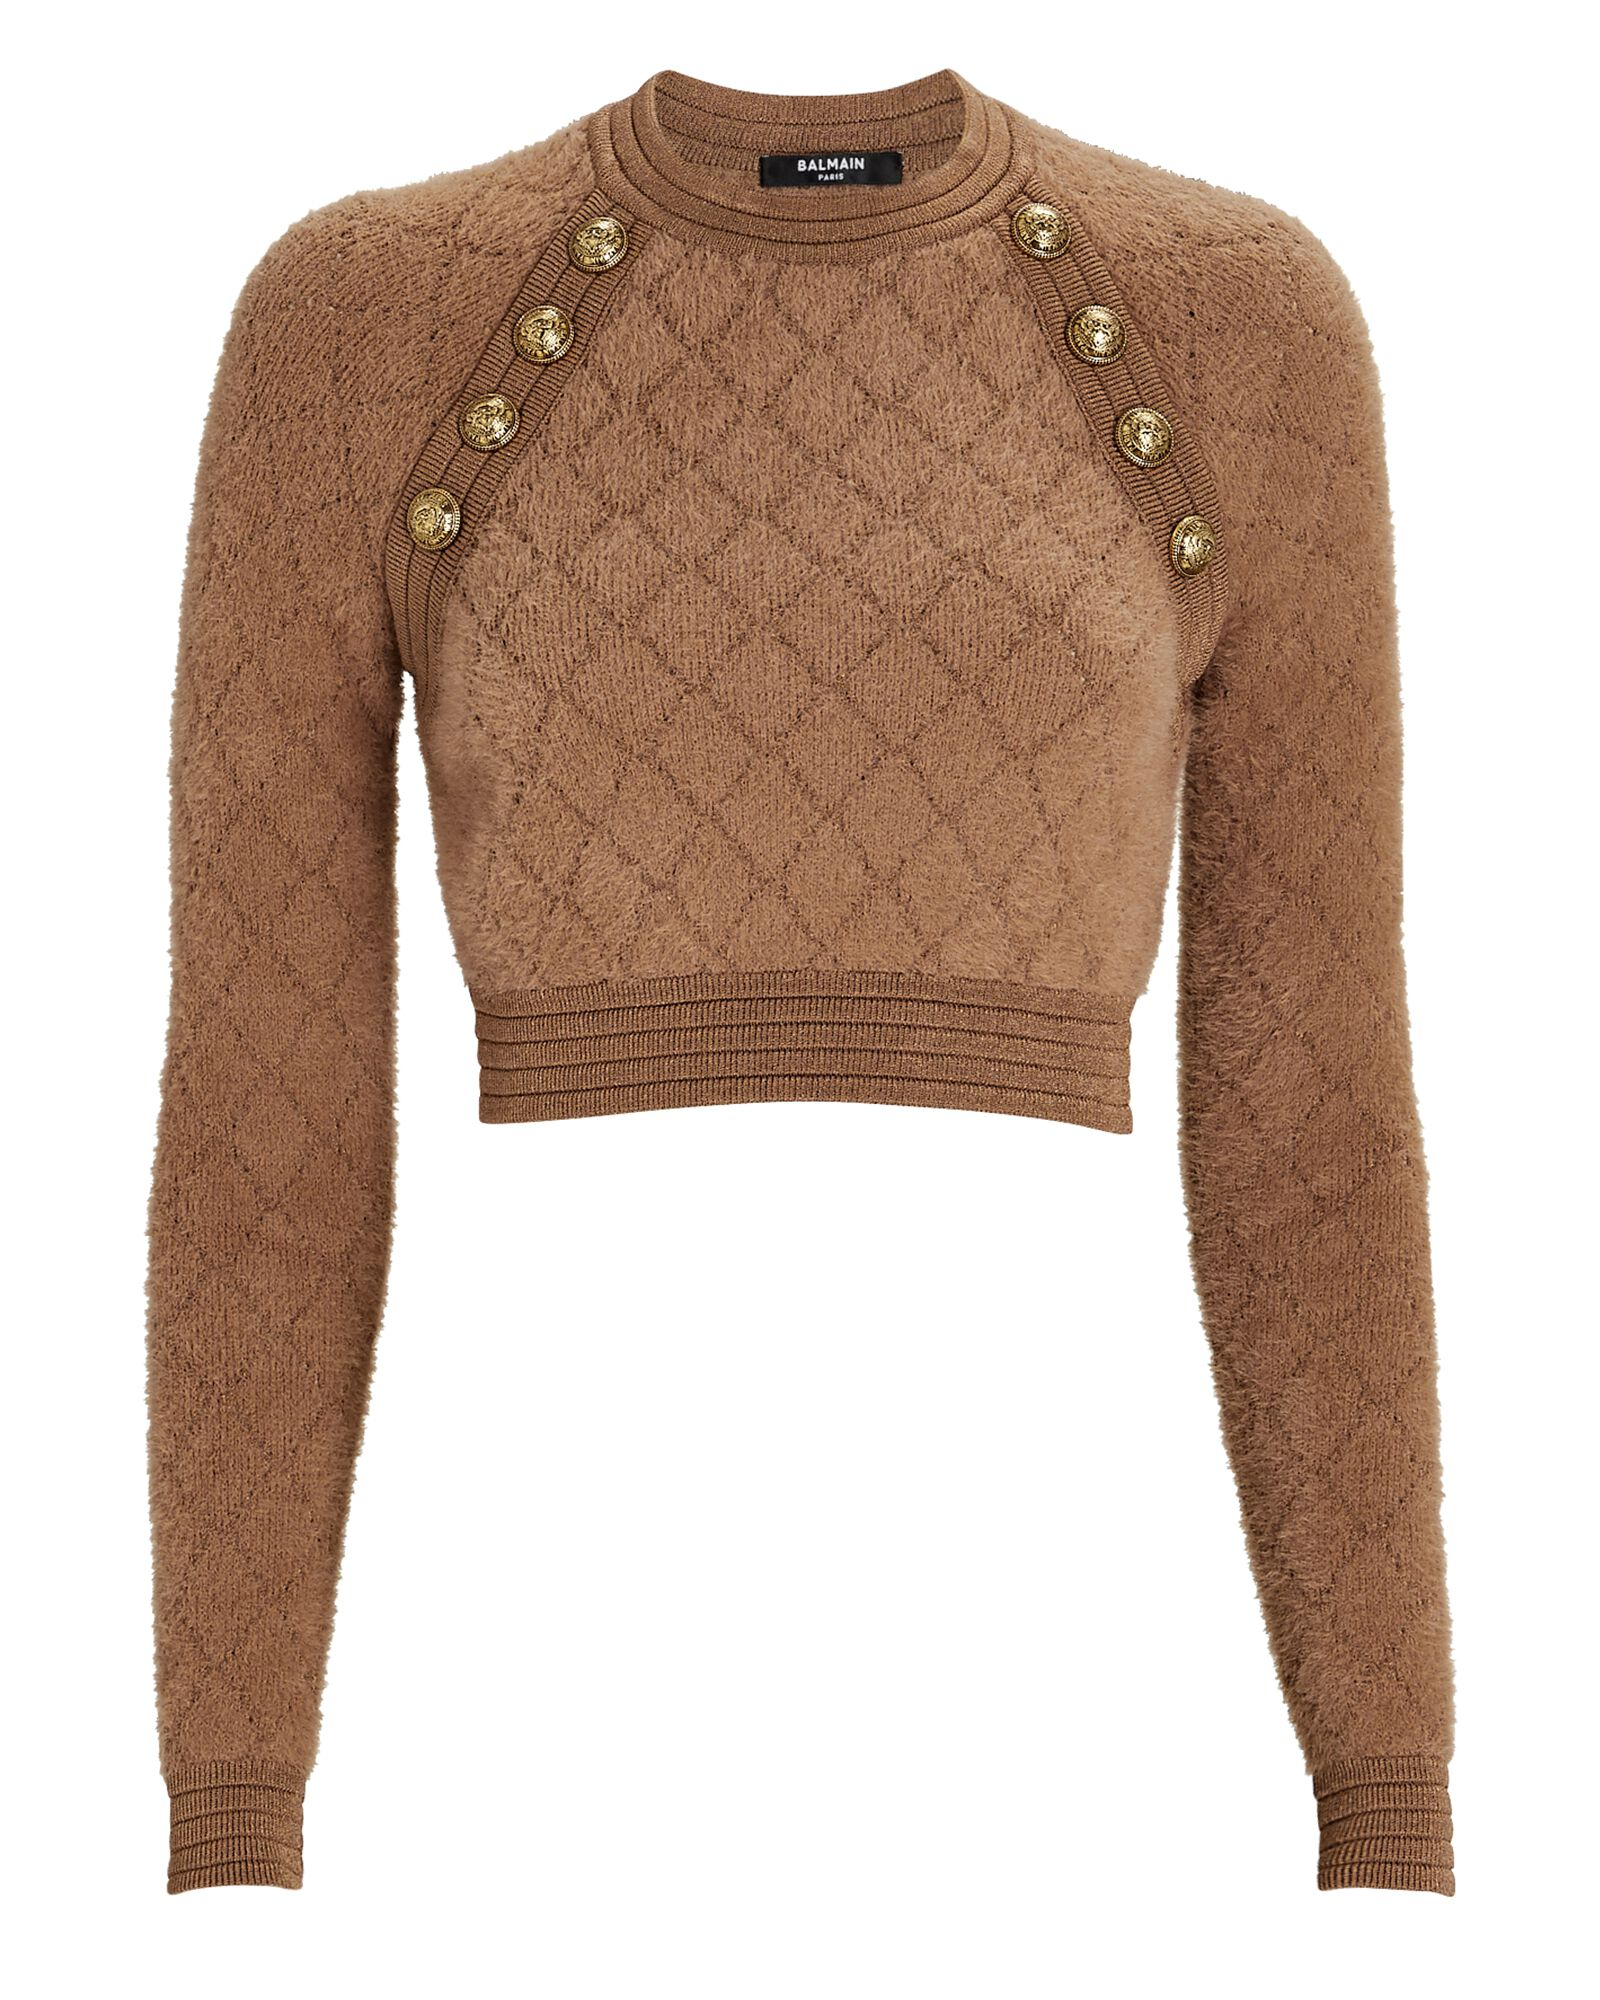 Diamond Knit Cropped Sweater, BROWN, hi-res